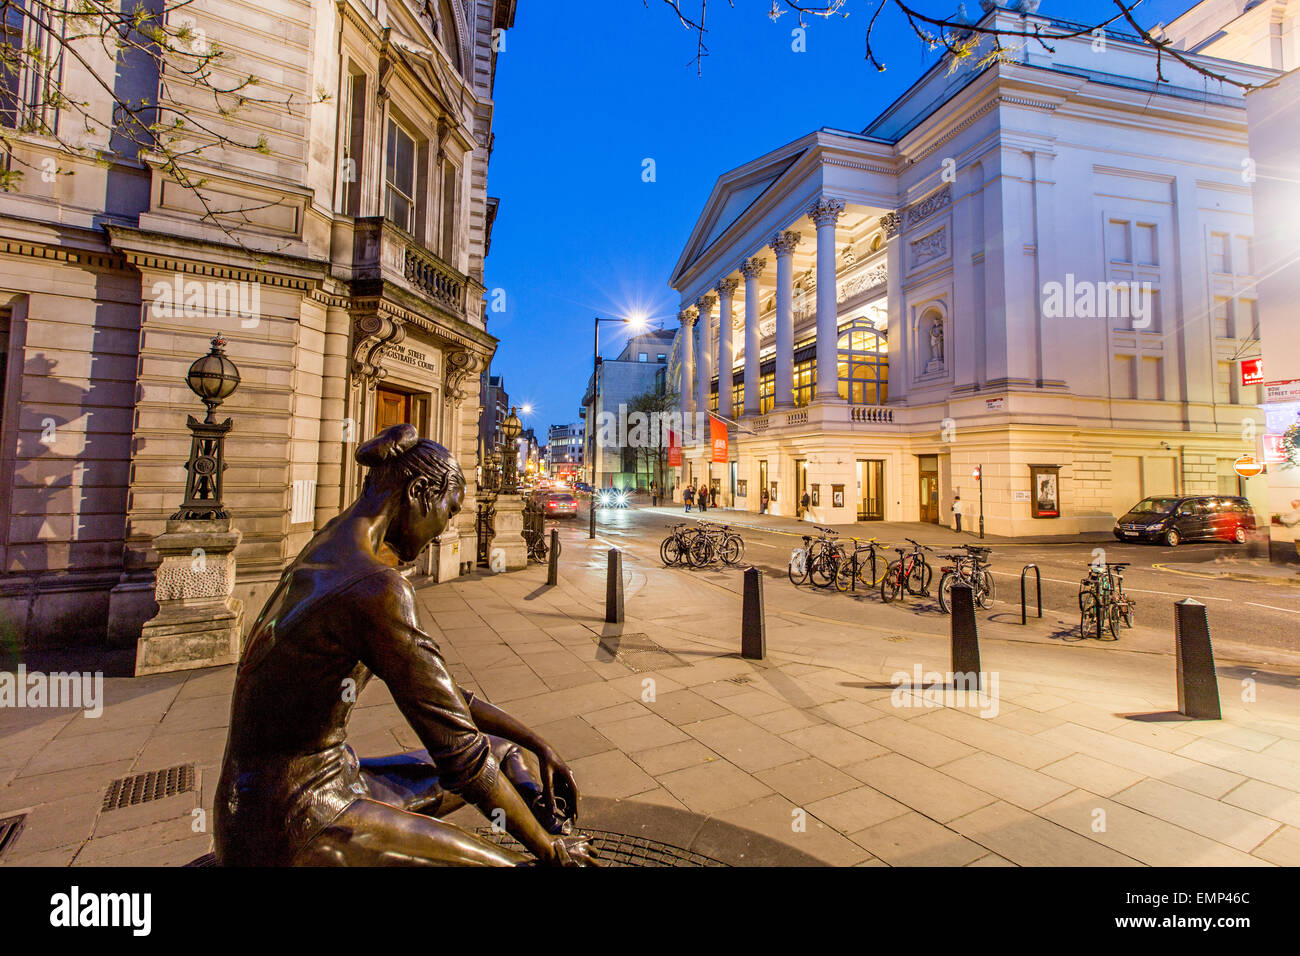 Martlett Court off  Bow Street With The Royal Opera House at Night London UK - Stock Image